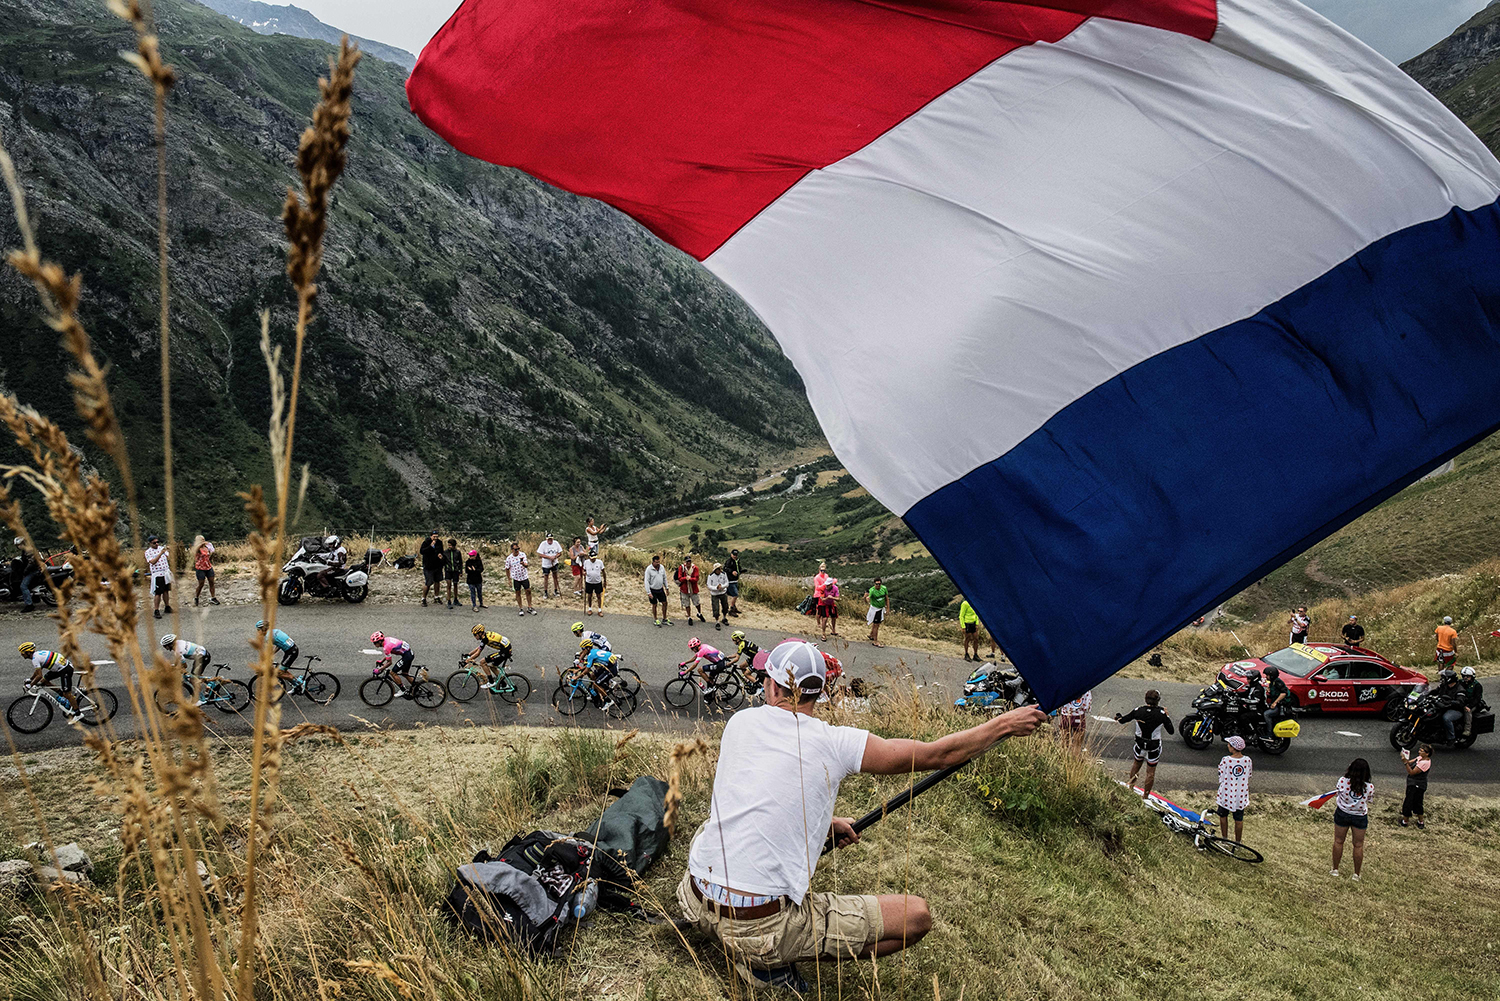 A fan waves a French national flag as the pack rides uphill during the 19th stage of the Tour de France cycling race between Saint-Jean-de-Maurienne and Tignes on July 26. JEFF PACHOUD/AFP/Getty Images